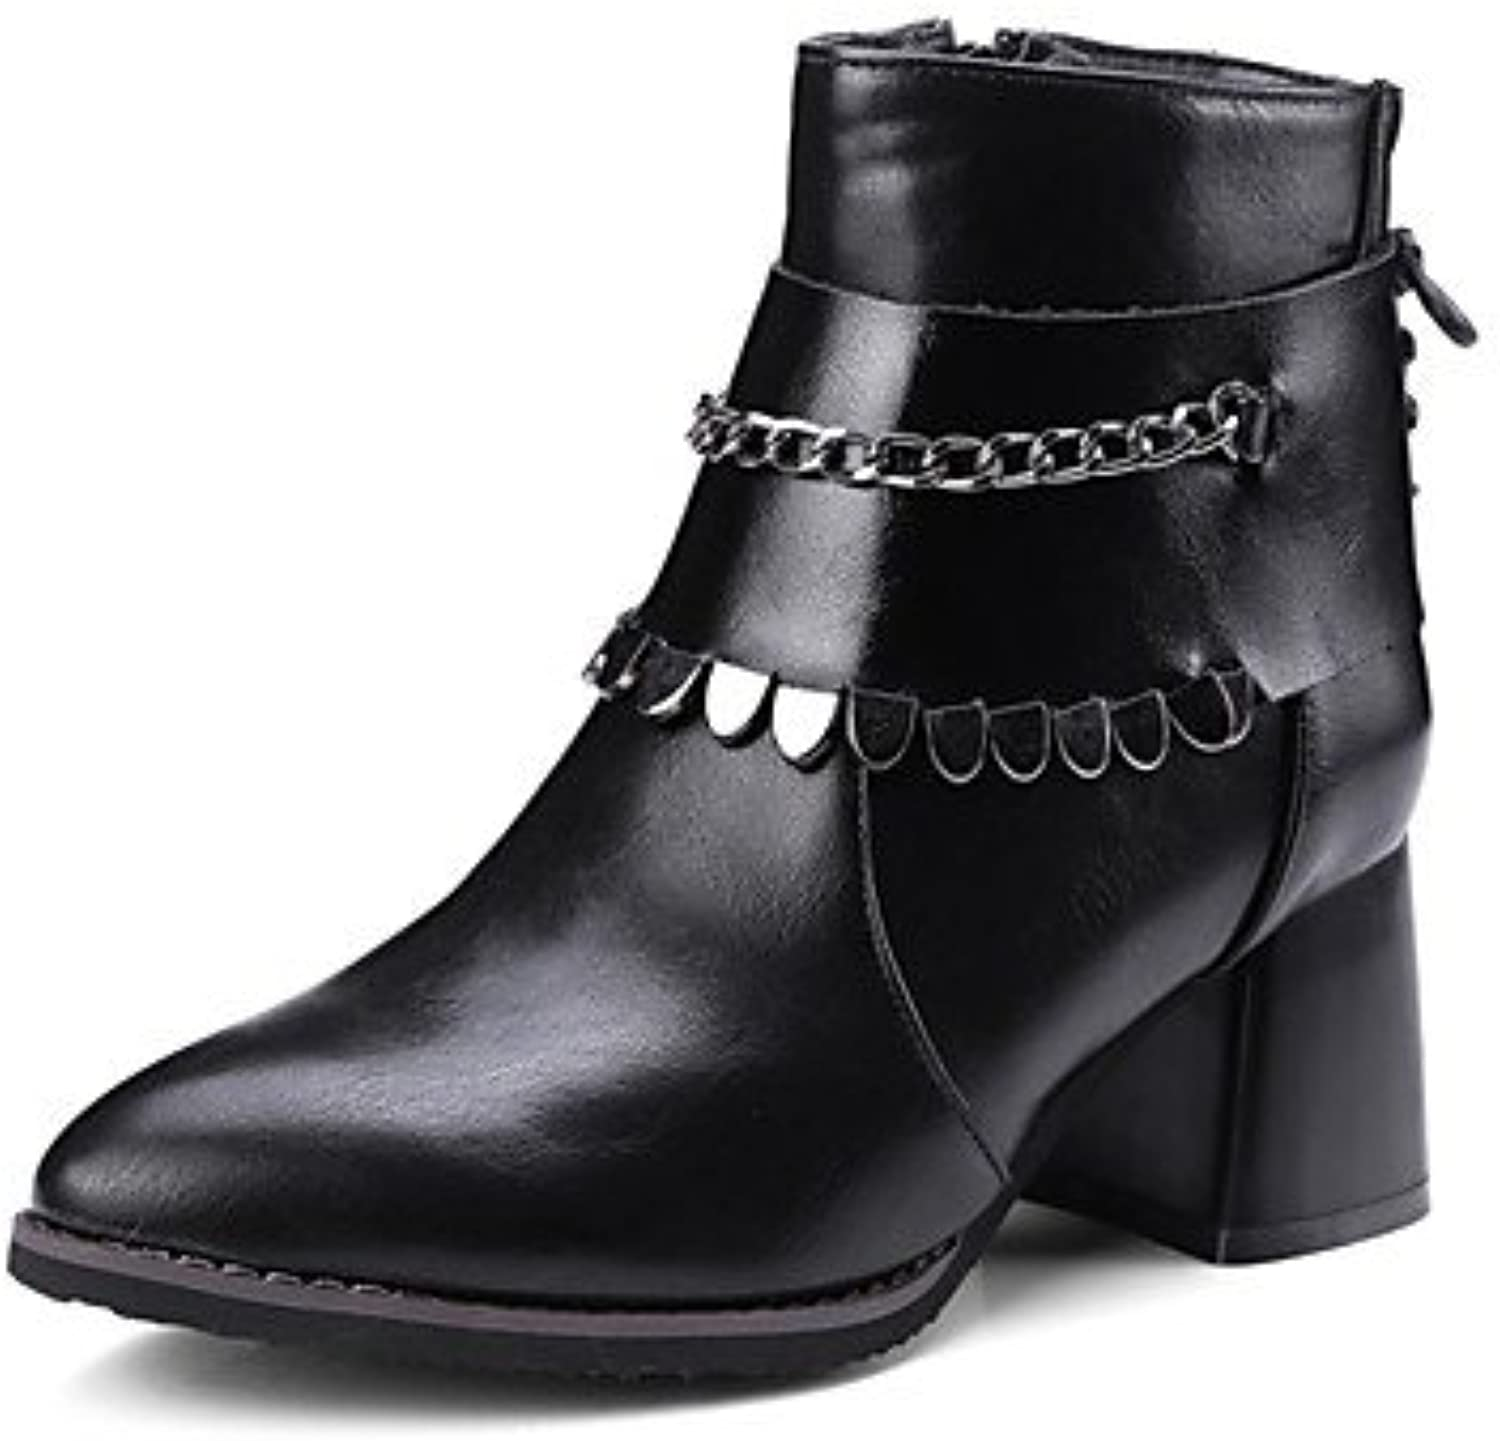 f1b2f2924db8 Women s Shoes Leatherette Leatherette Leatherette Winter Novelty Fashion  Boots Boots Chunky Heel Pointed Toe Mid-Calf Boots For Casual.